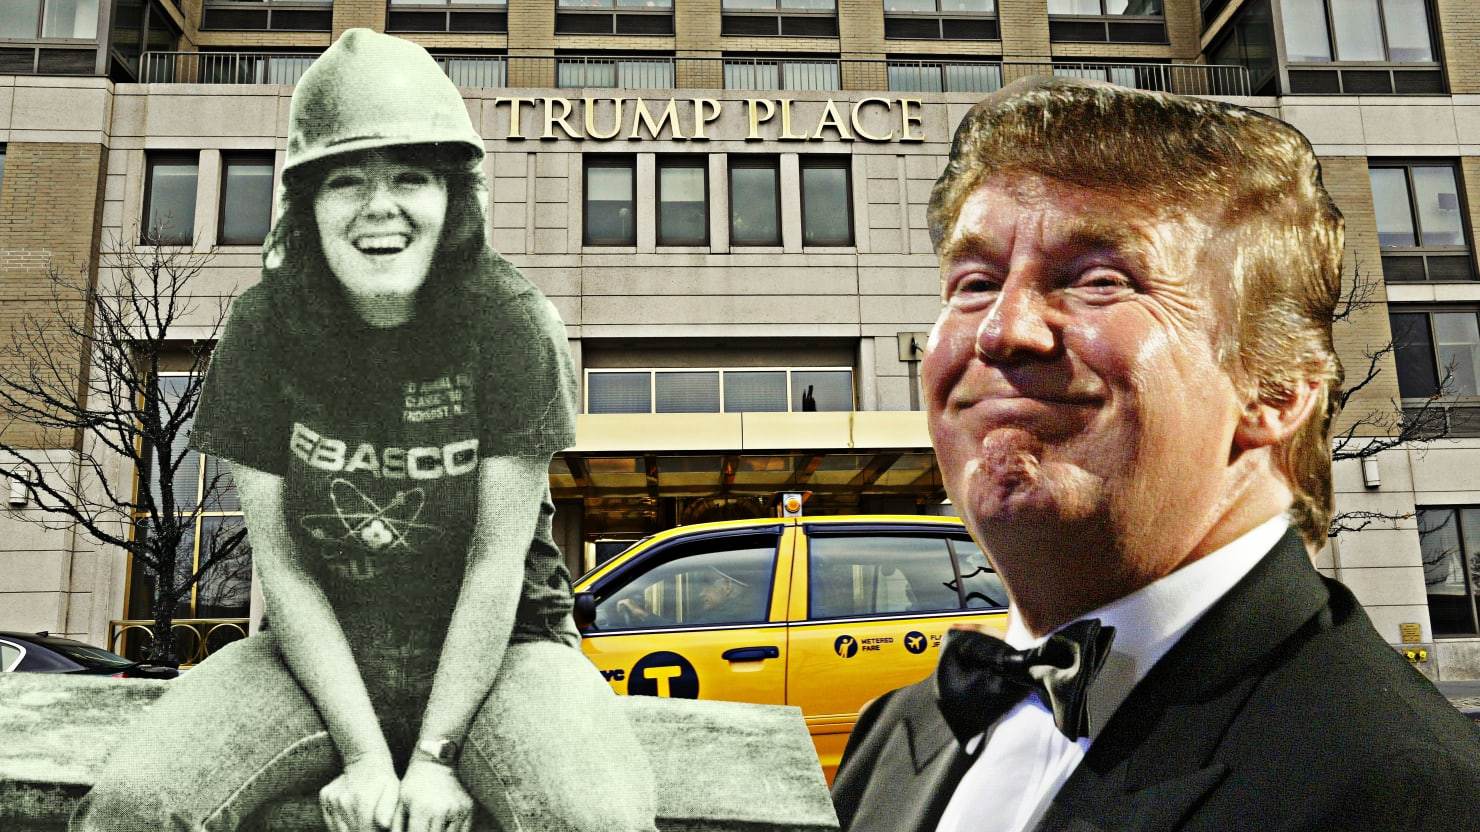 Trump's Female Tower Boss Talks About His Half-Billion Dollar Debt, Womanizing, and How He Learned to be Shameless